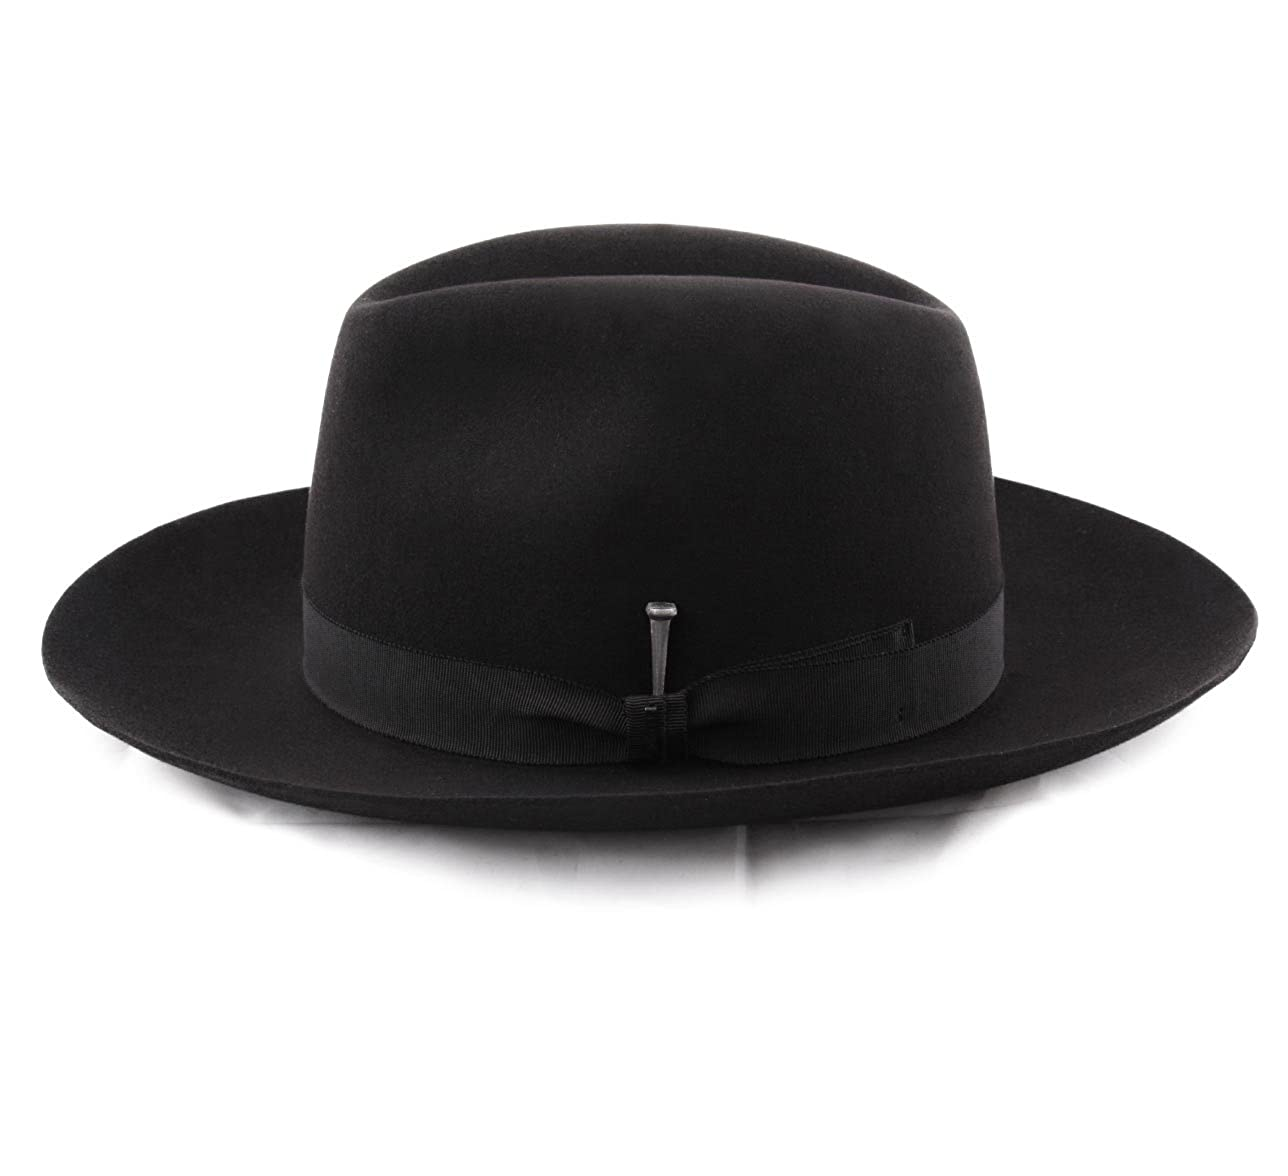 c06db3a7806 Bailey of Hollywood Ralat Fedora Hat Size L Noir at Amazon Men s Clothing  store